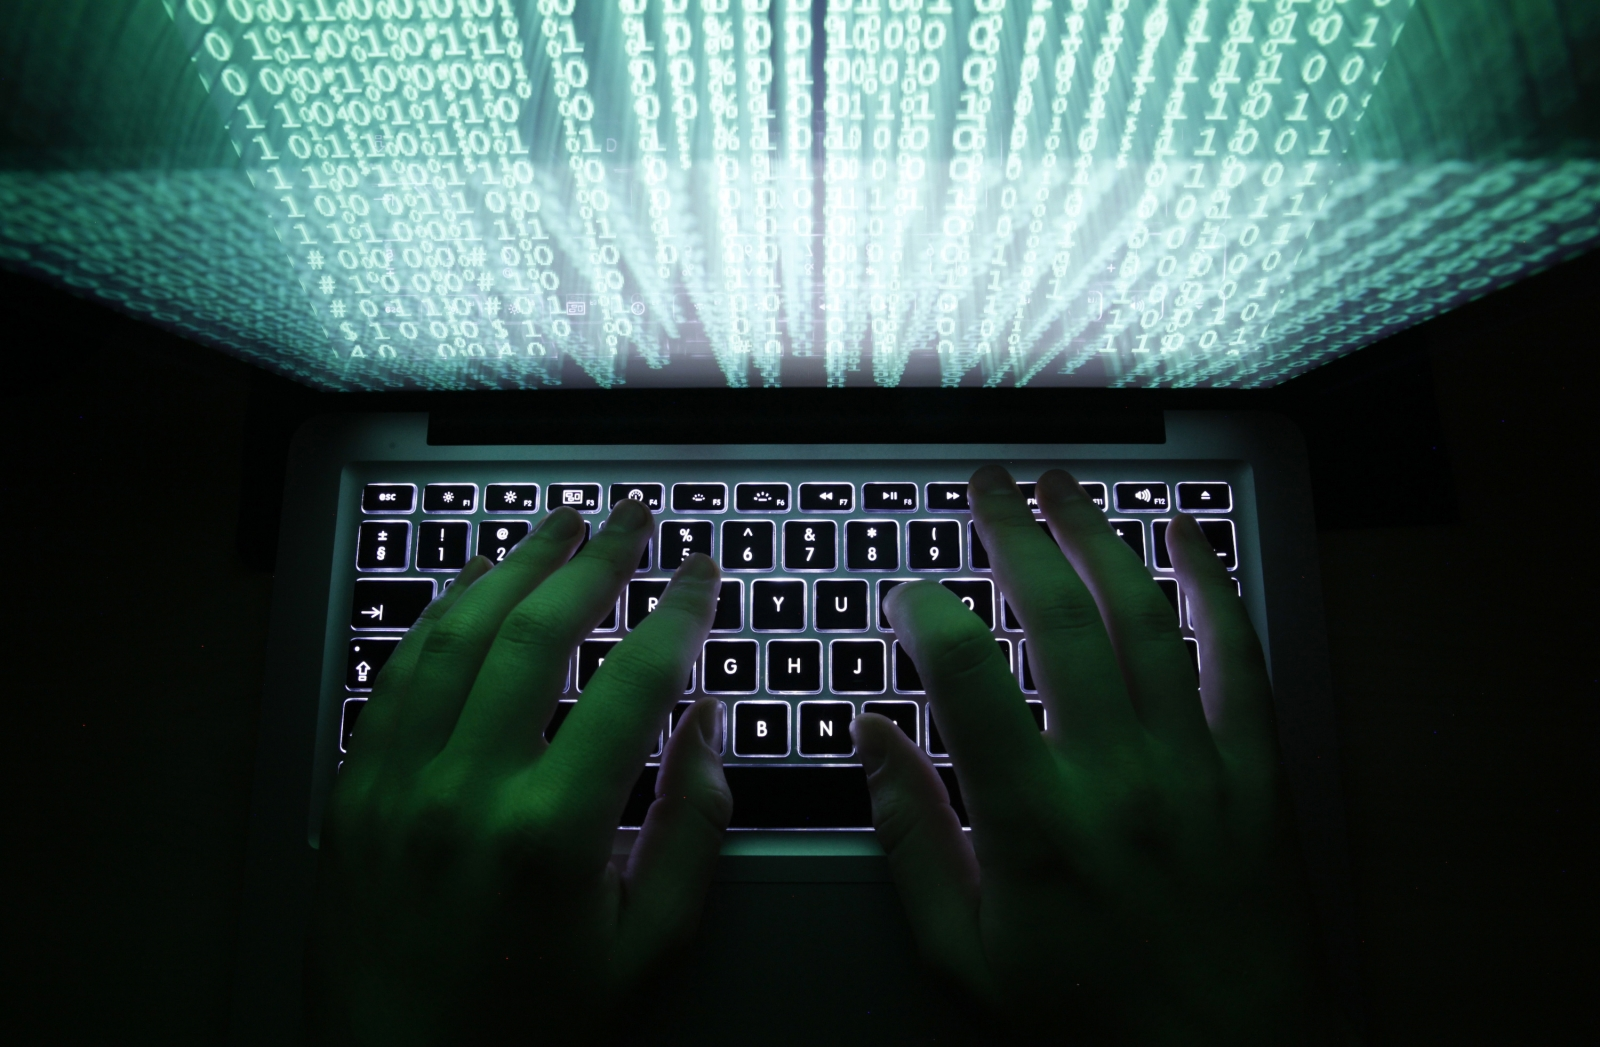 US police dept hit with data leak and ransowmare